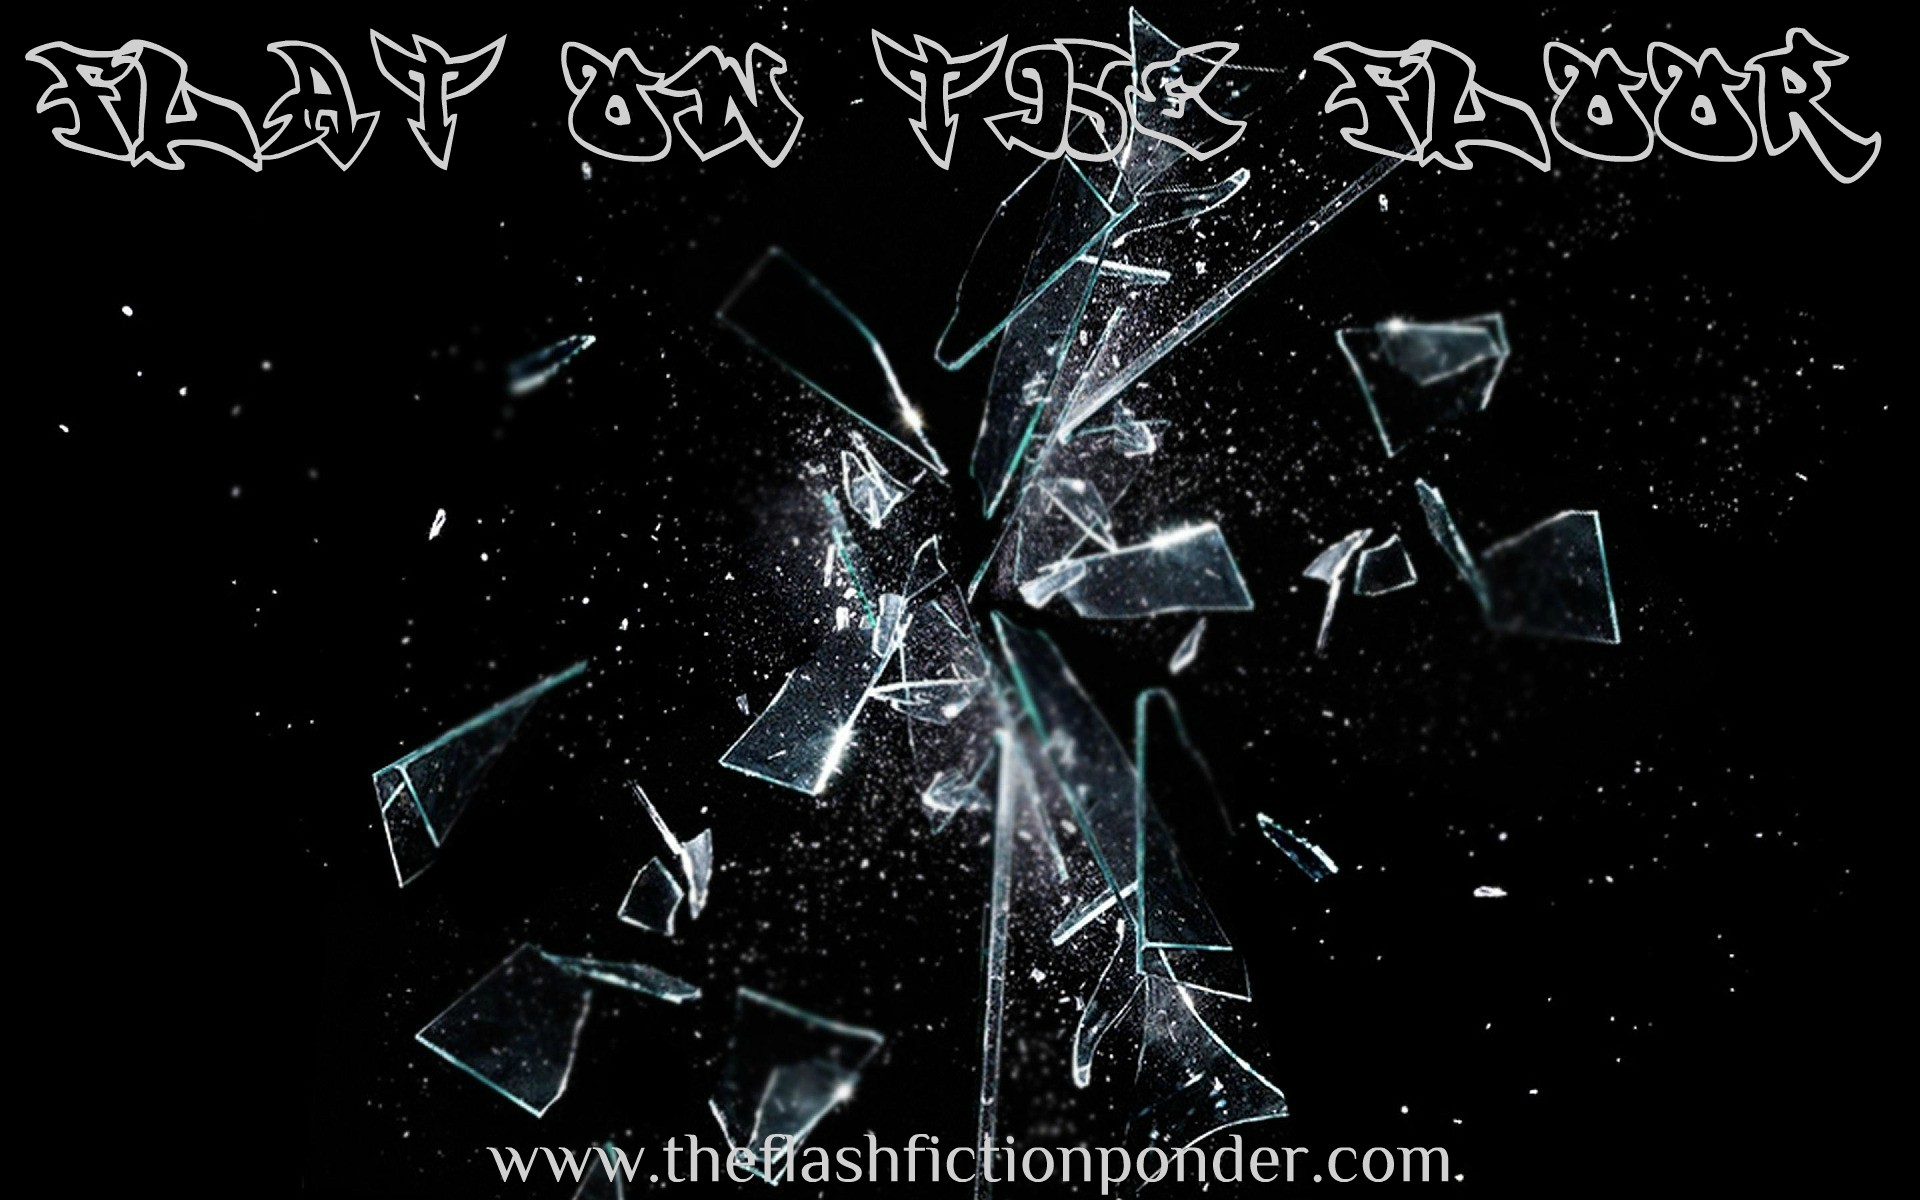 Broken glass image for Nickelback Flat on the Floor music video, script by Rico Lamoureux of The Flash Fiction Ponder